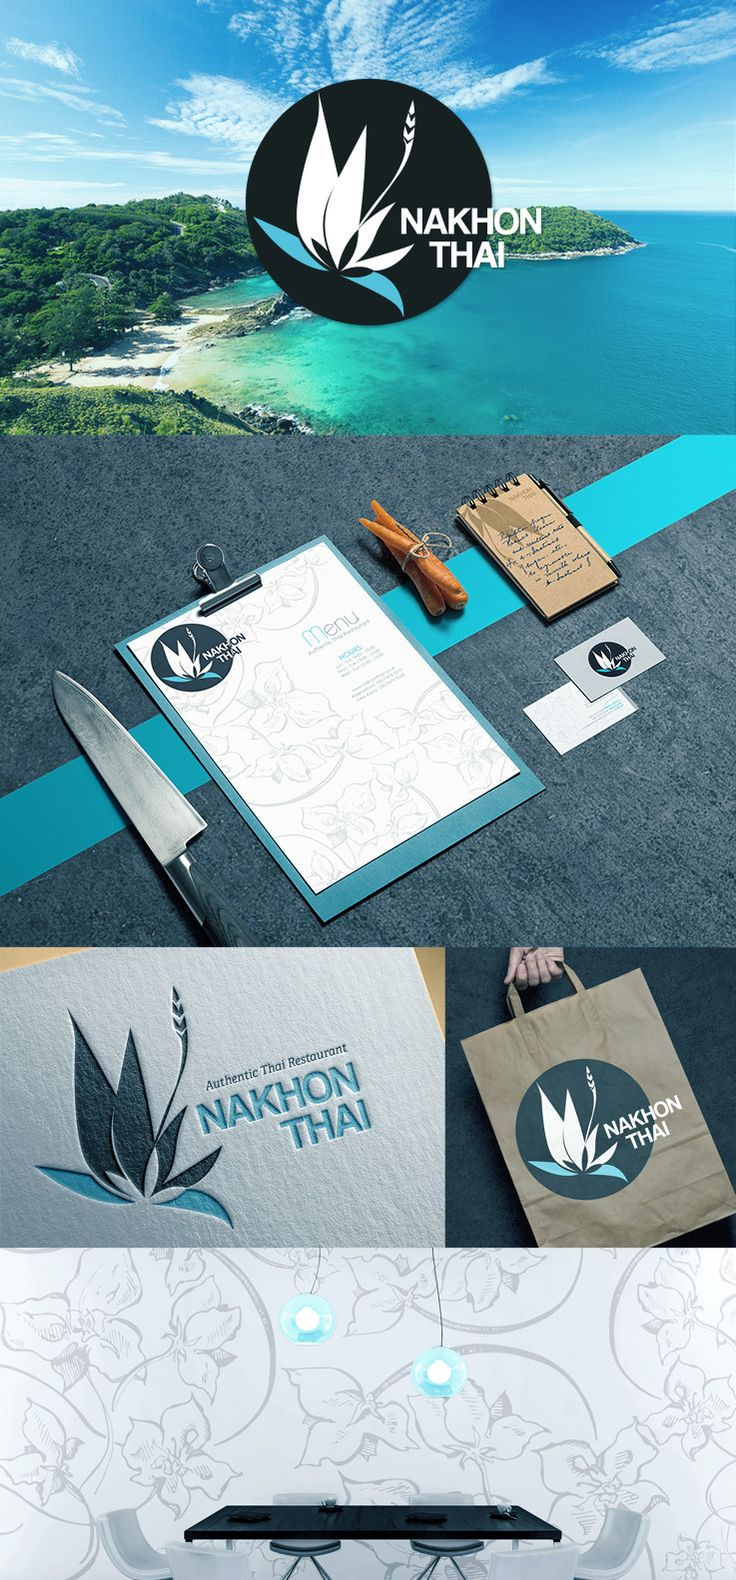 56 best Thai images on Pinterest | Banana leaves, Product design and ...